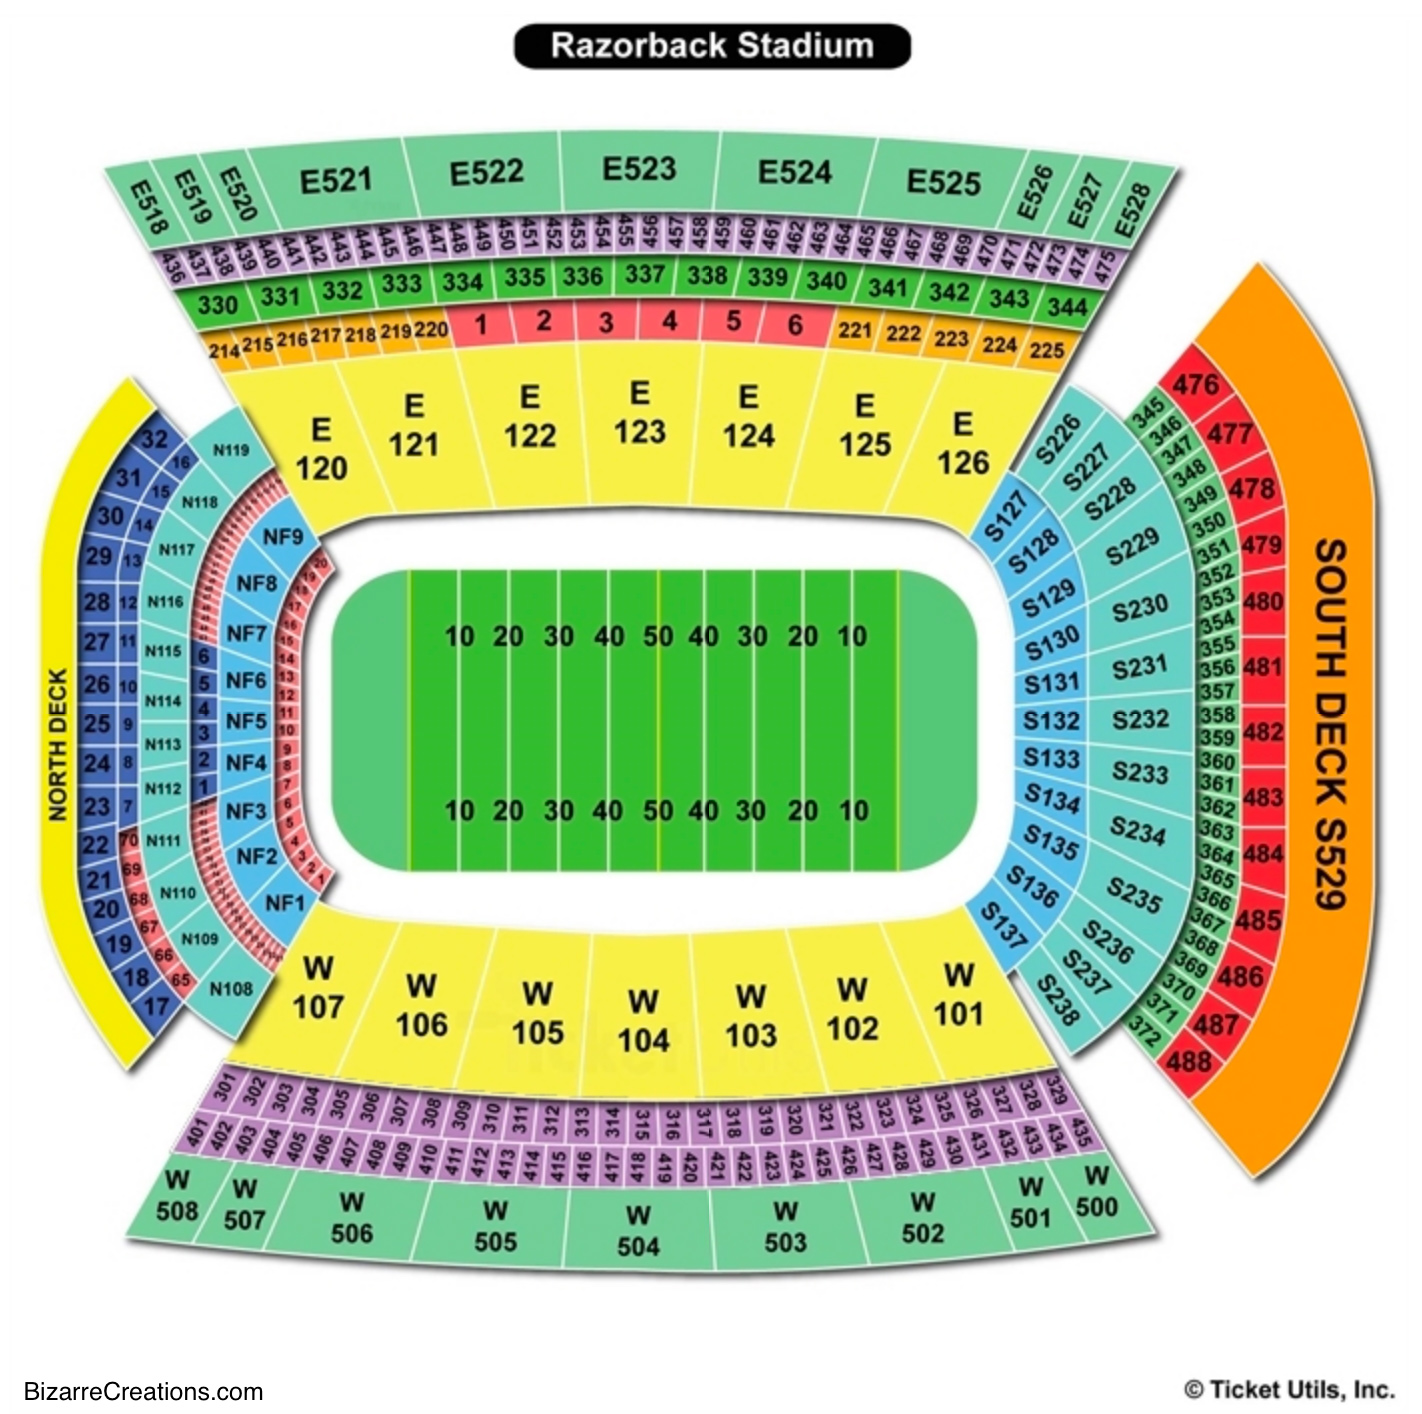 Donald W Reynolds Razorback Stadium Seating Charts Views Games Answers Cheats